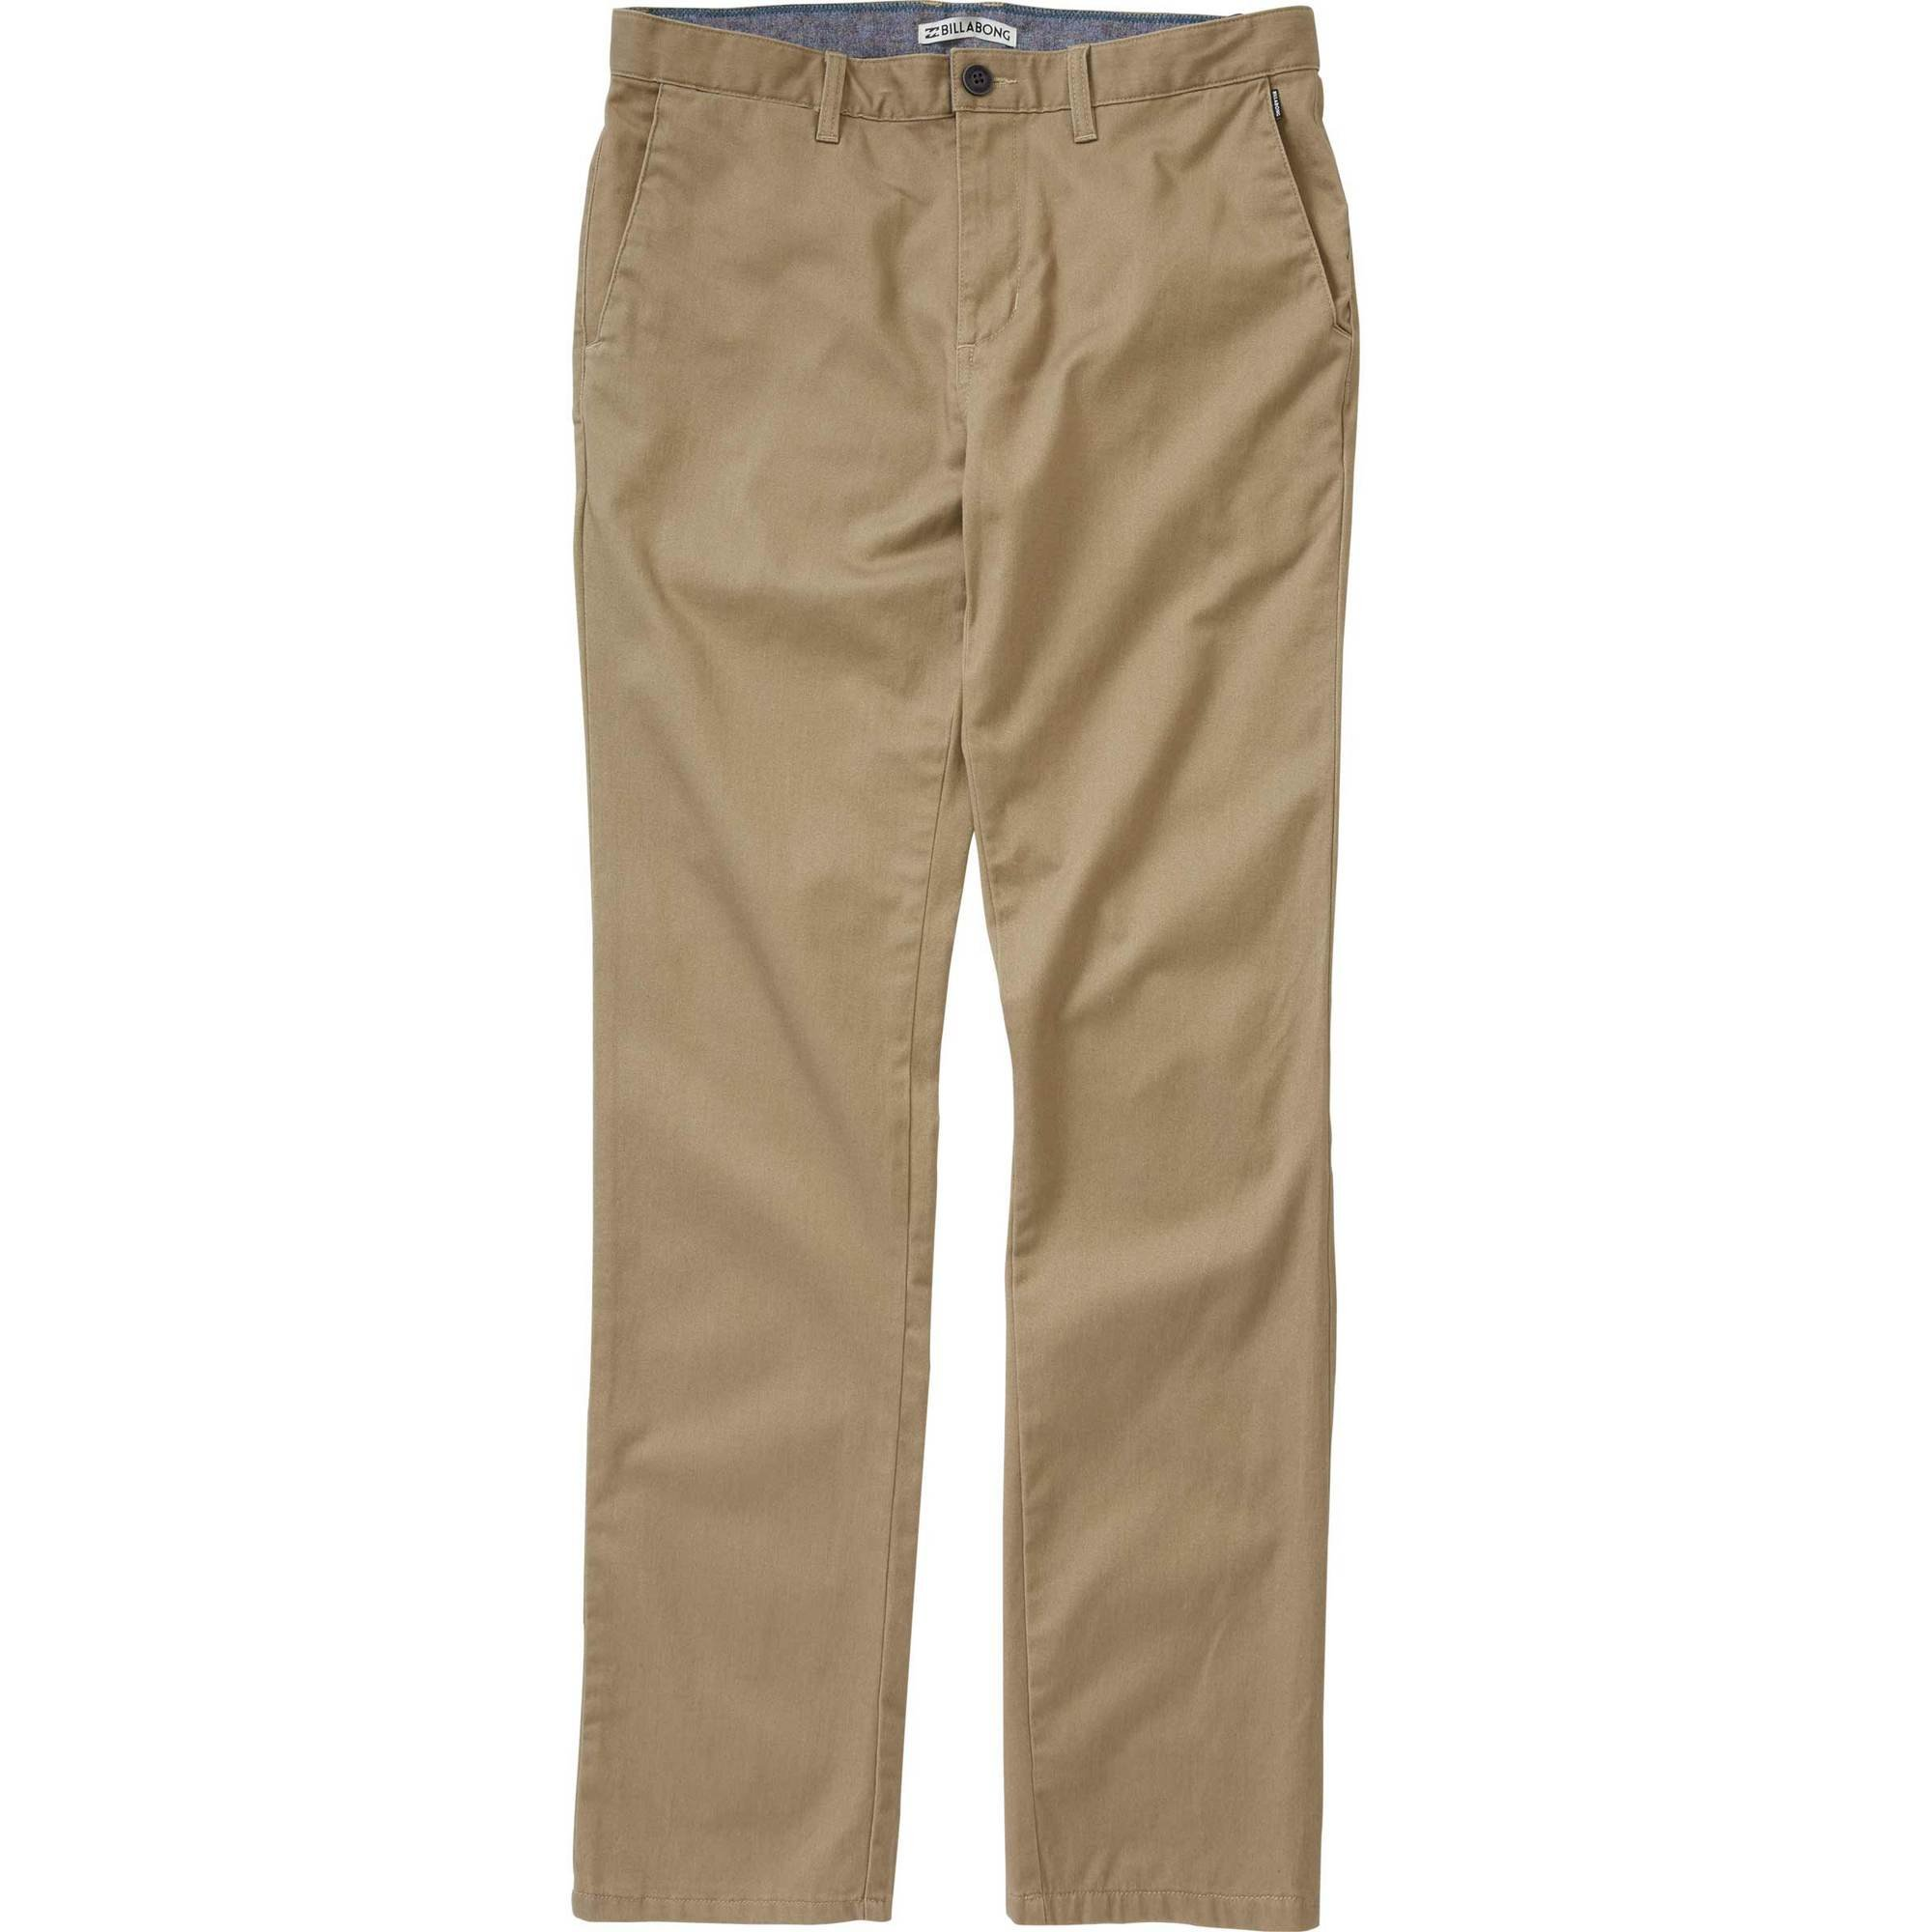 Billabong Boys' Carter Chino Pant Dark Khaki 4S